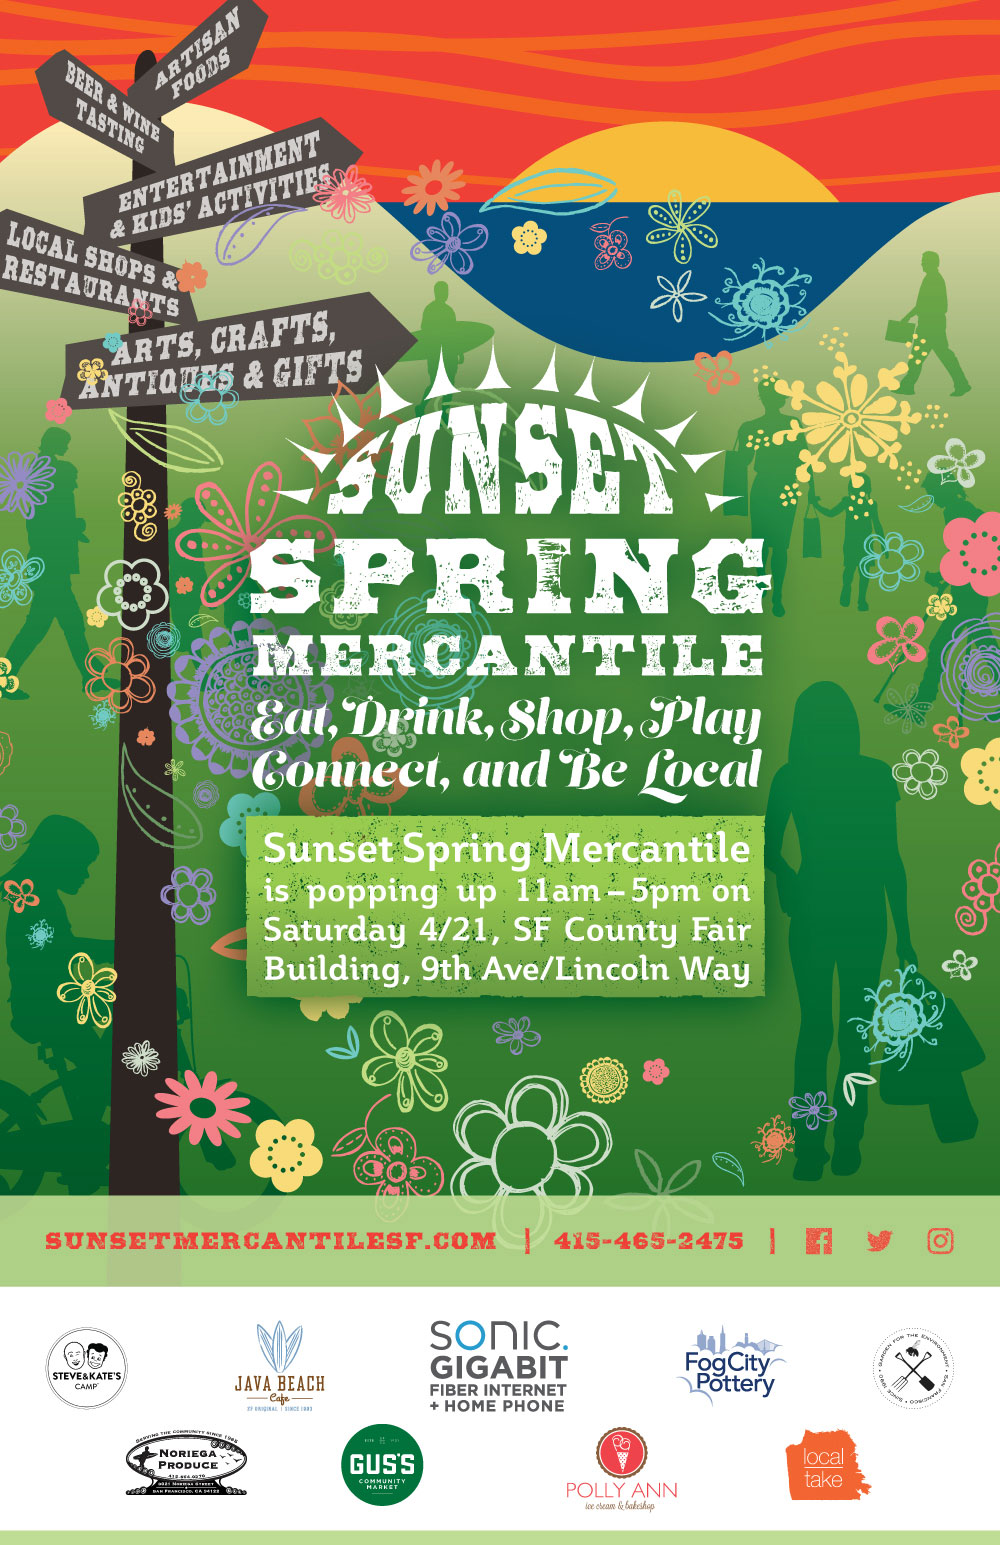 Sunset Spring Mercantile is popping up 11am - 5pm, Saturday, April 21, SF County Fair Building, 9th Ave/Lincoln Way - Artisan Foods - Beer & Wine Tasting - Entertainment & Kids' Activities - Local Shops & Restaurants - Arts, Crafts, Antiques & Gifts